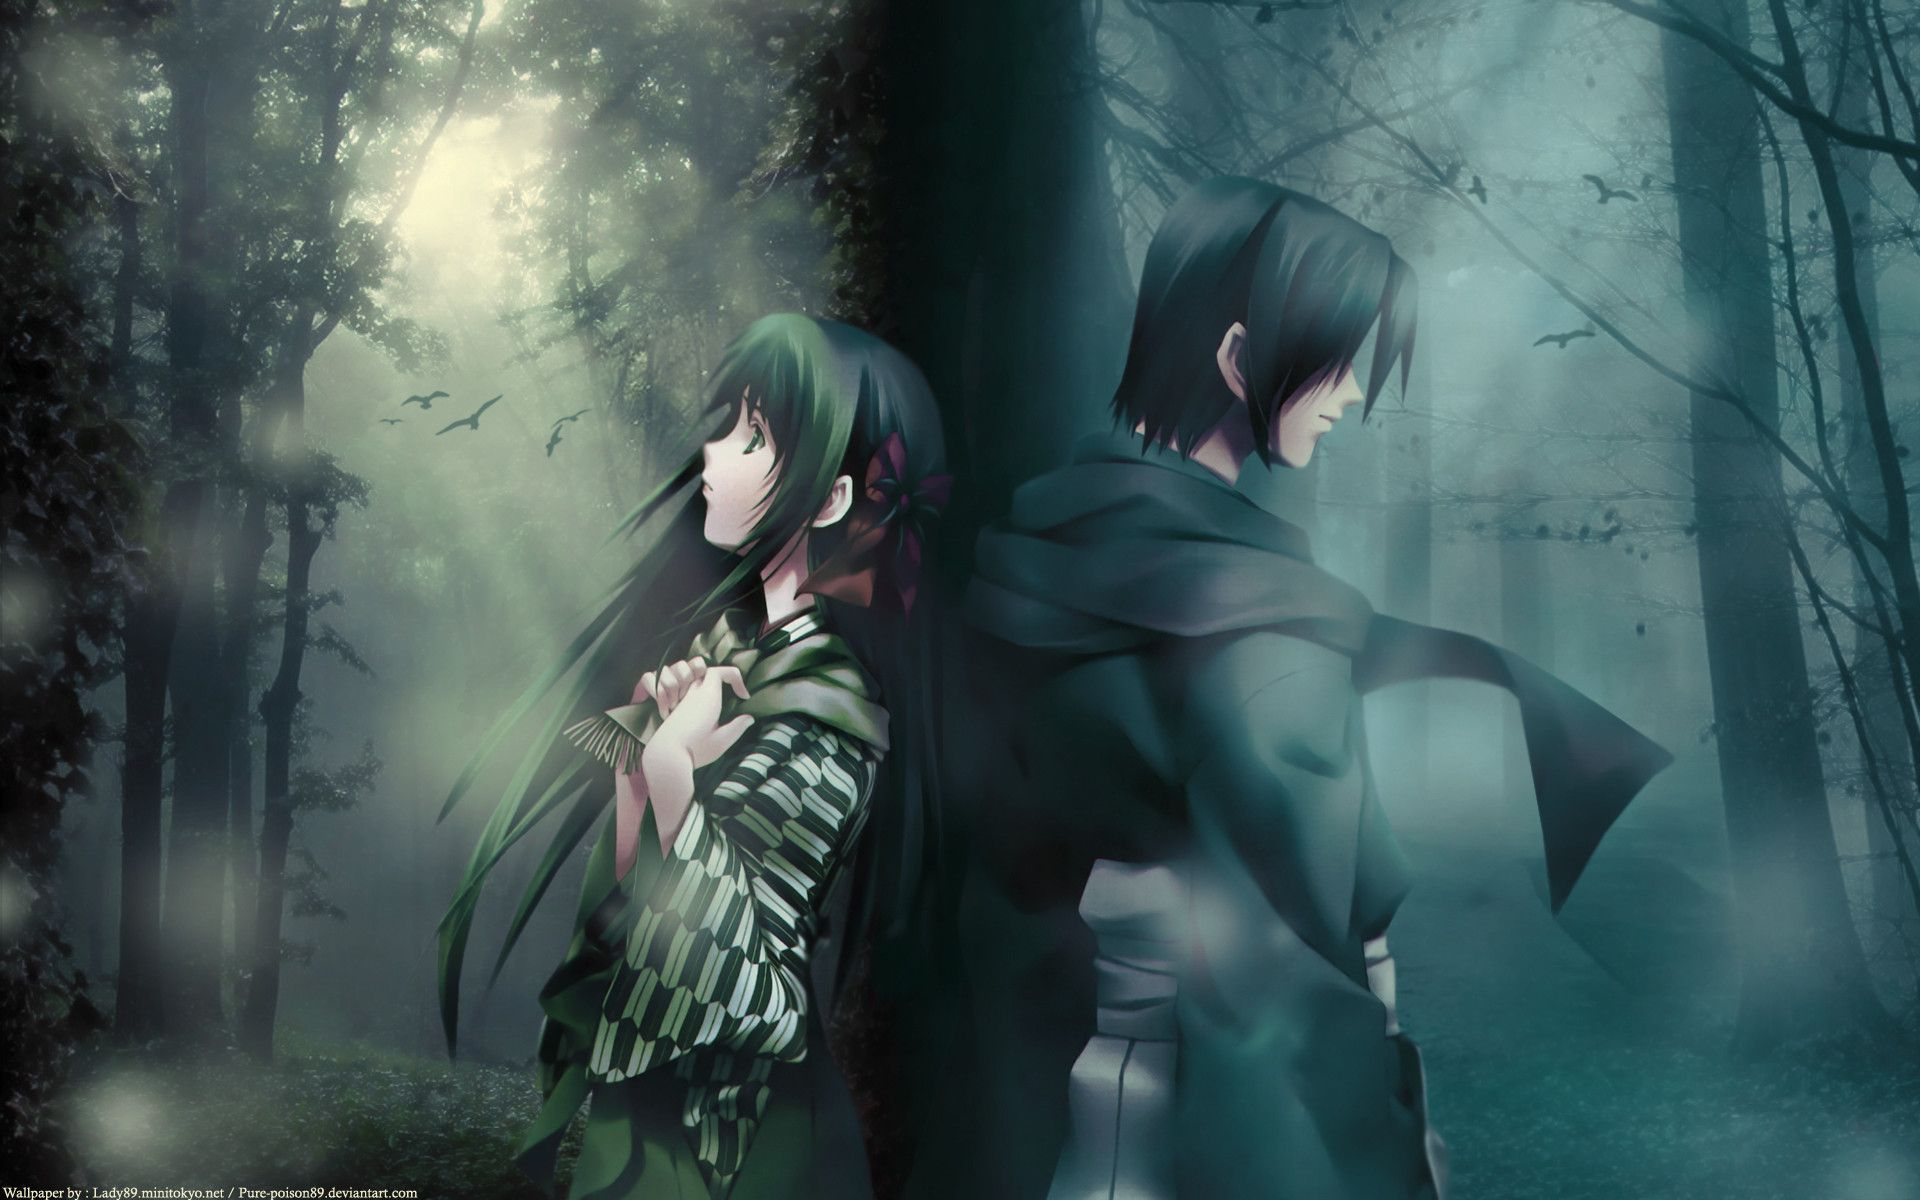 Rain sad anime wallpapers top free rain sad anime - Sad anime wallpaper ...